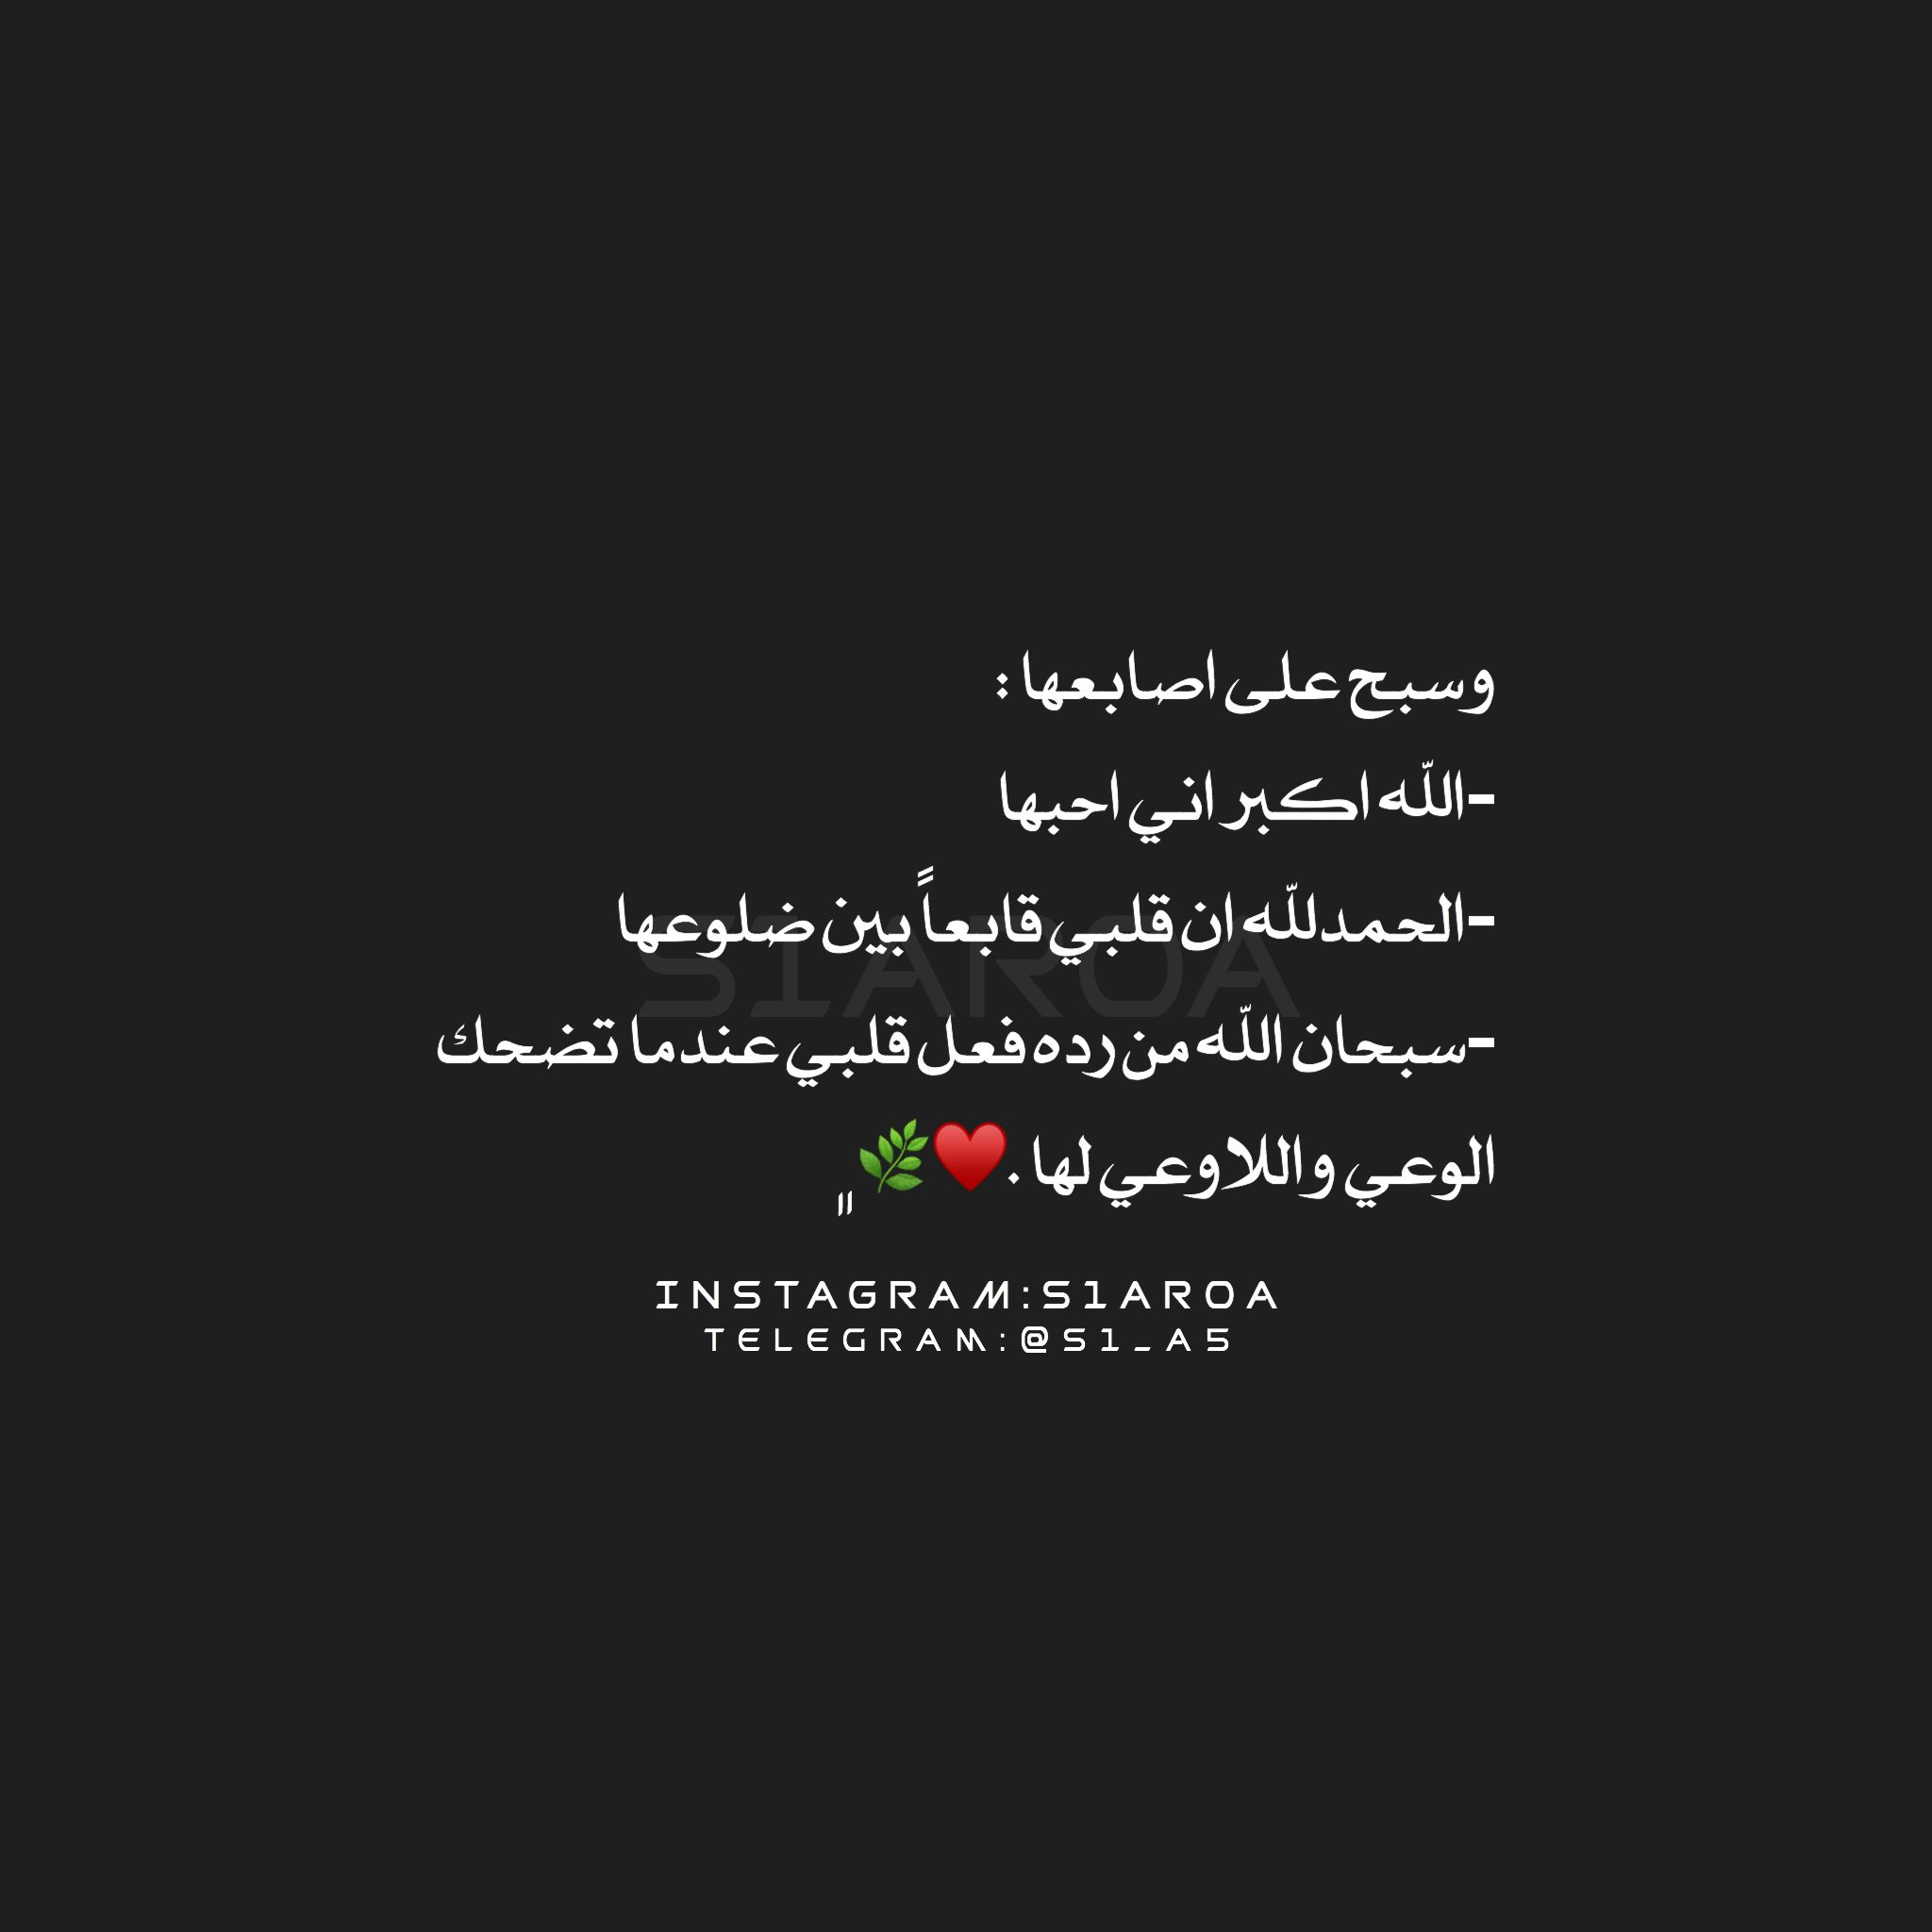 Pin By ميم ميمي On Asmaa Islamic Love Quotes Arabic Quotes Love Quotes